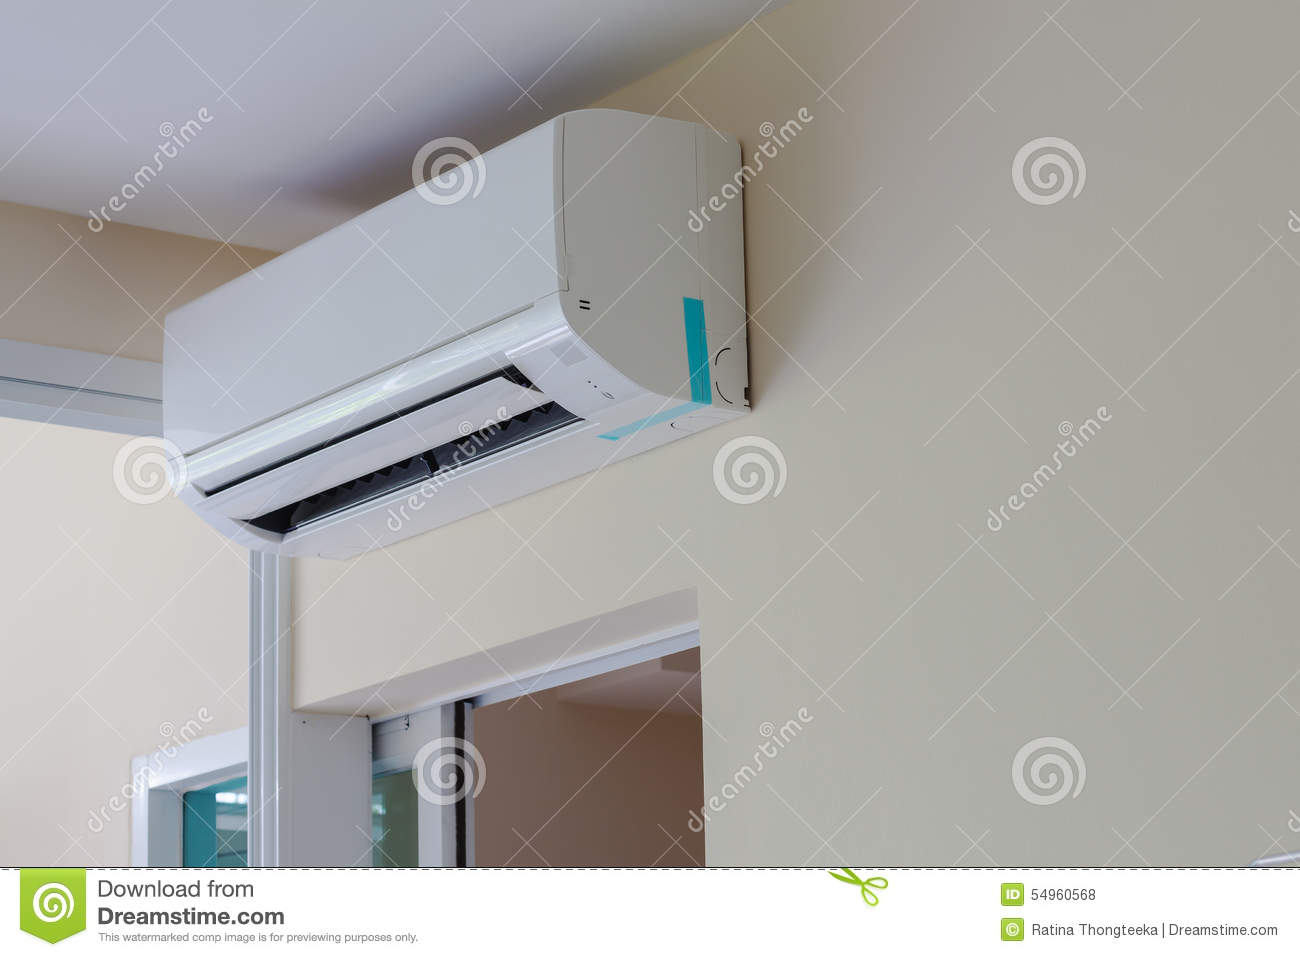 Air Conditioner Install On Wall For Condo Or Meeting Room